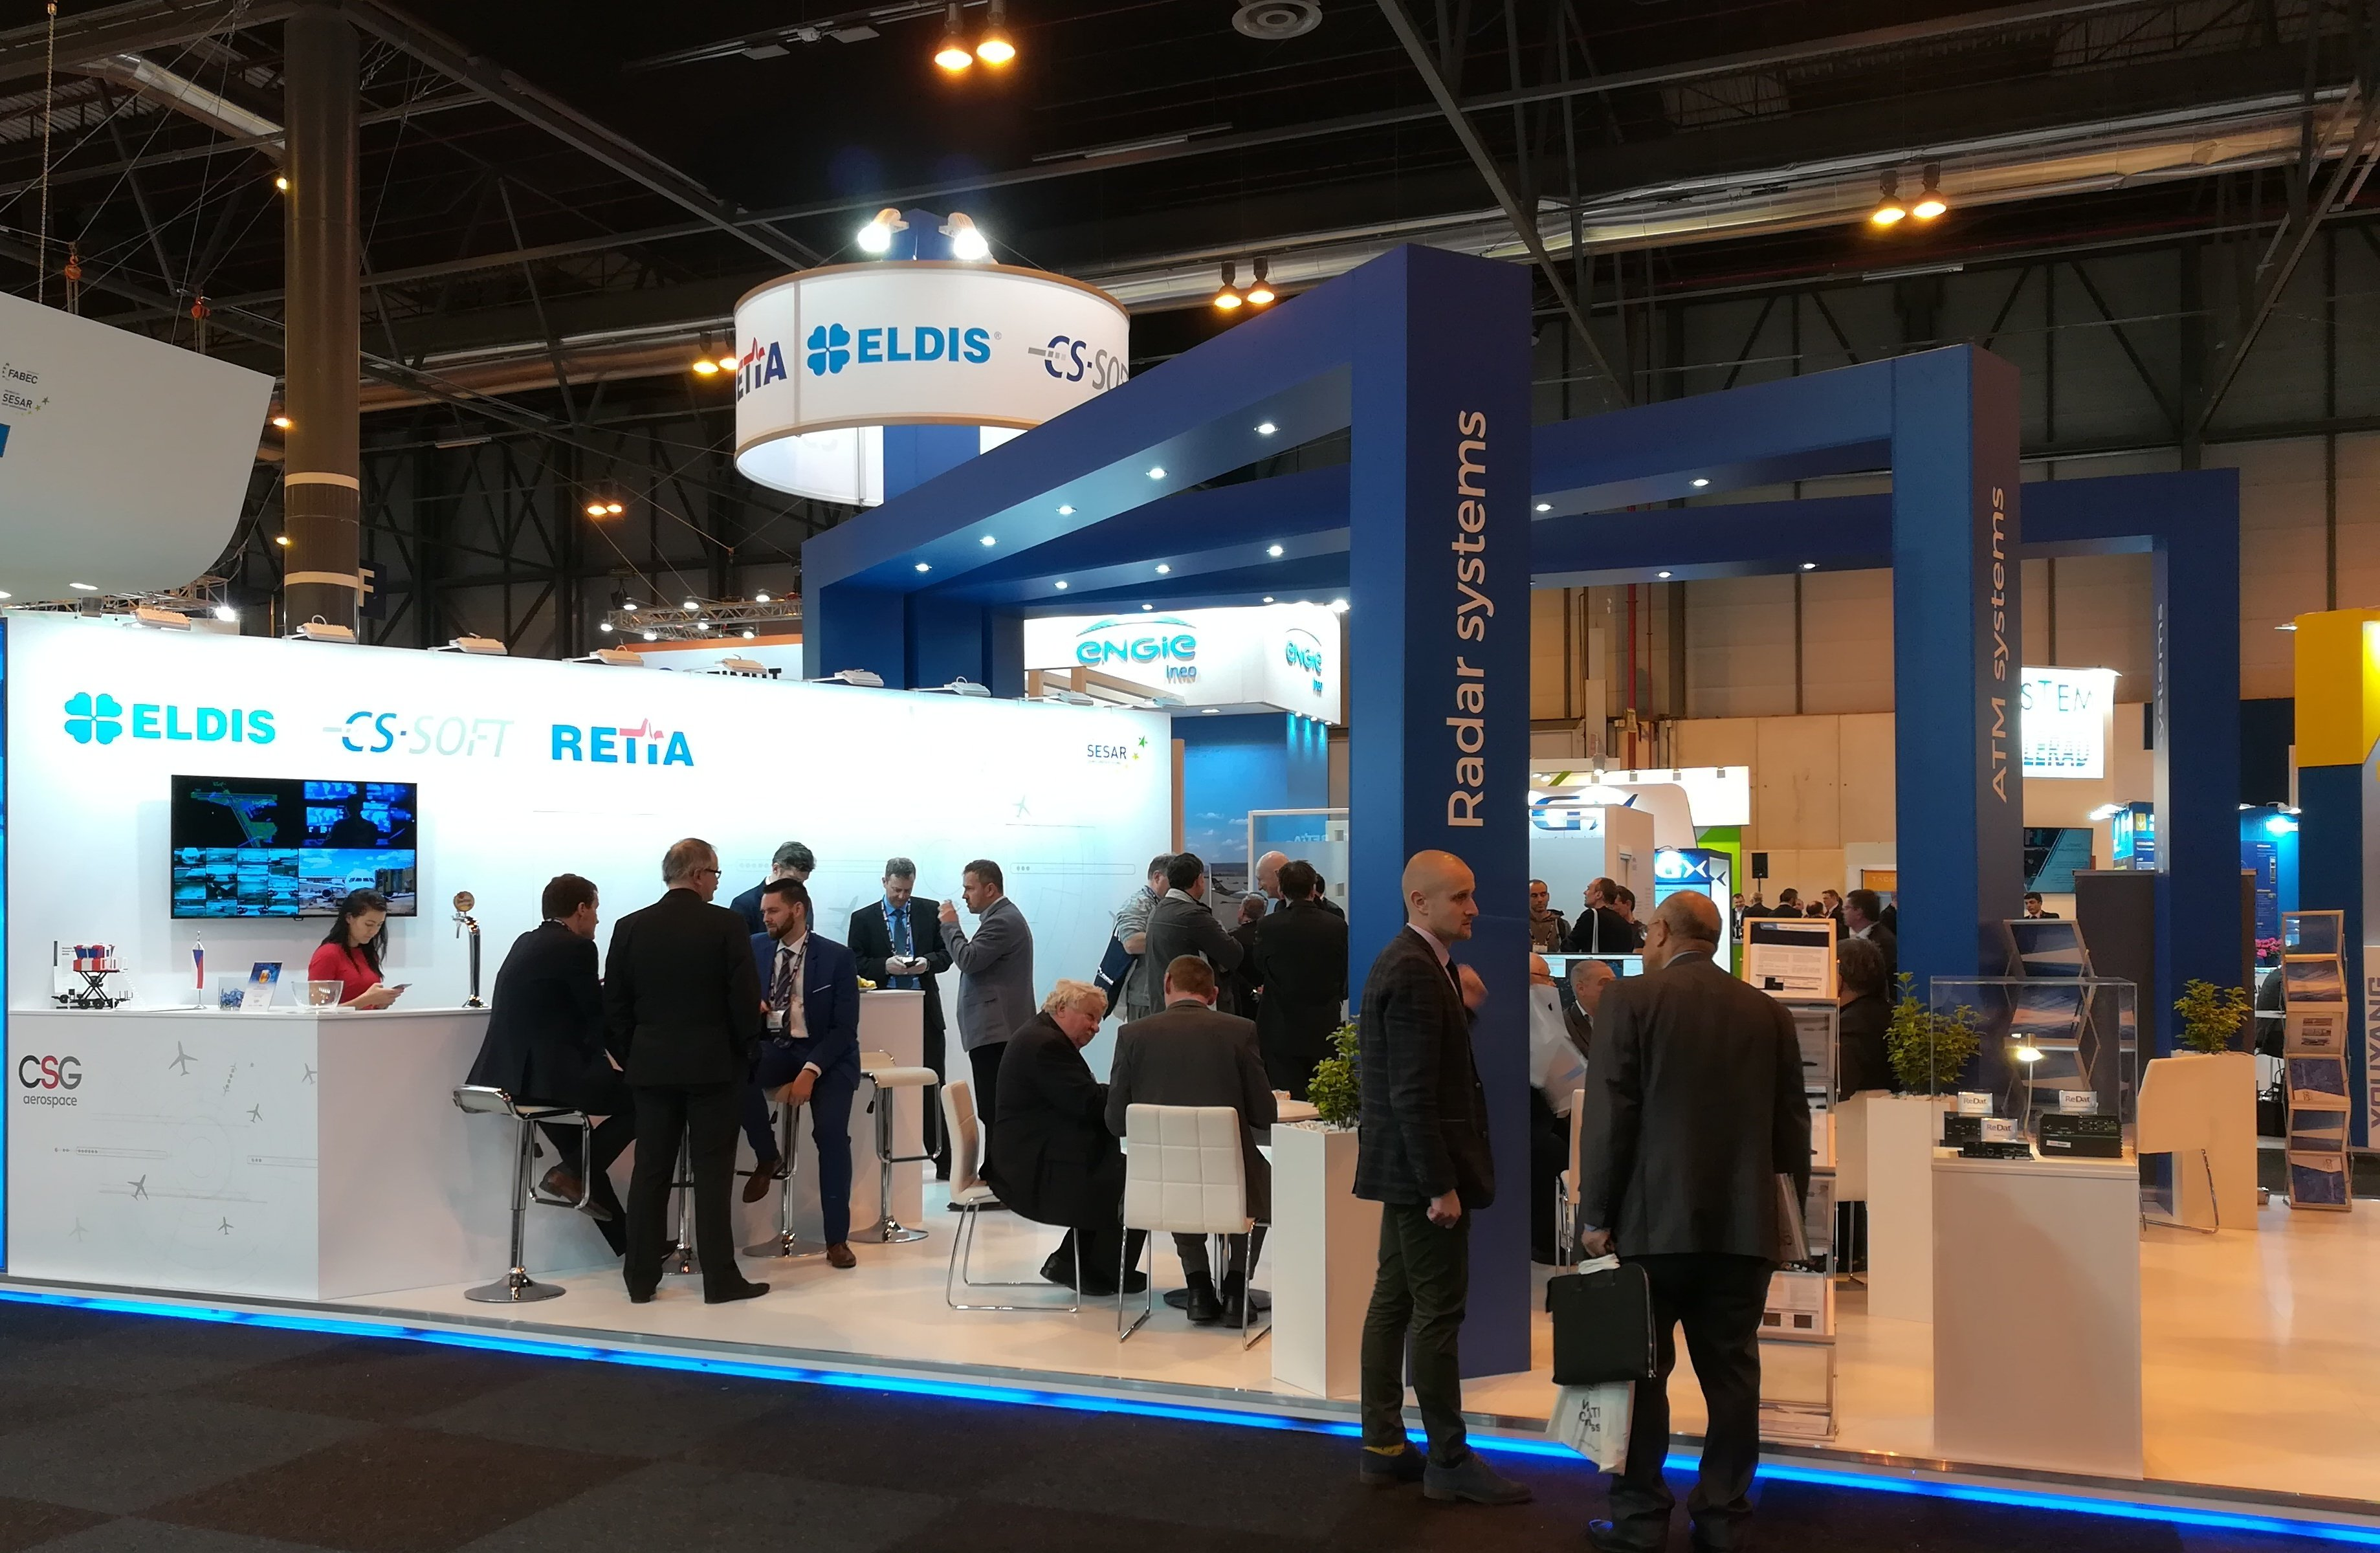 ELDIS, CS SOFT AND RETIA showed together at the World ATM Congress 2019 exhibition in Spain.